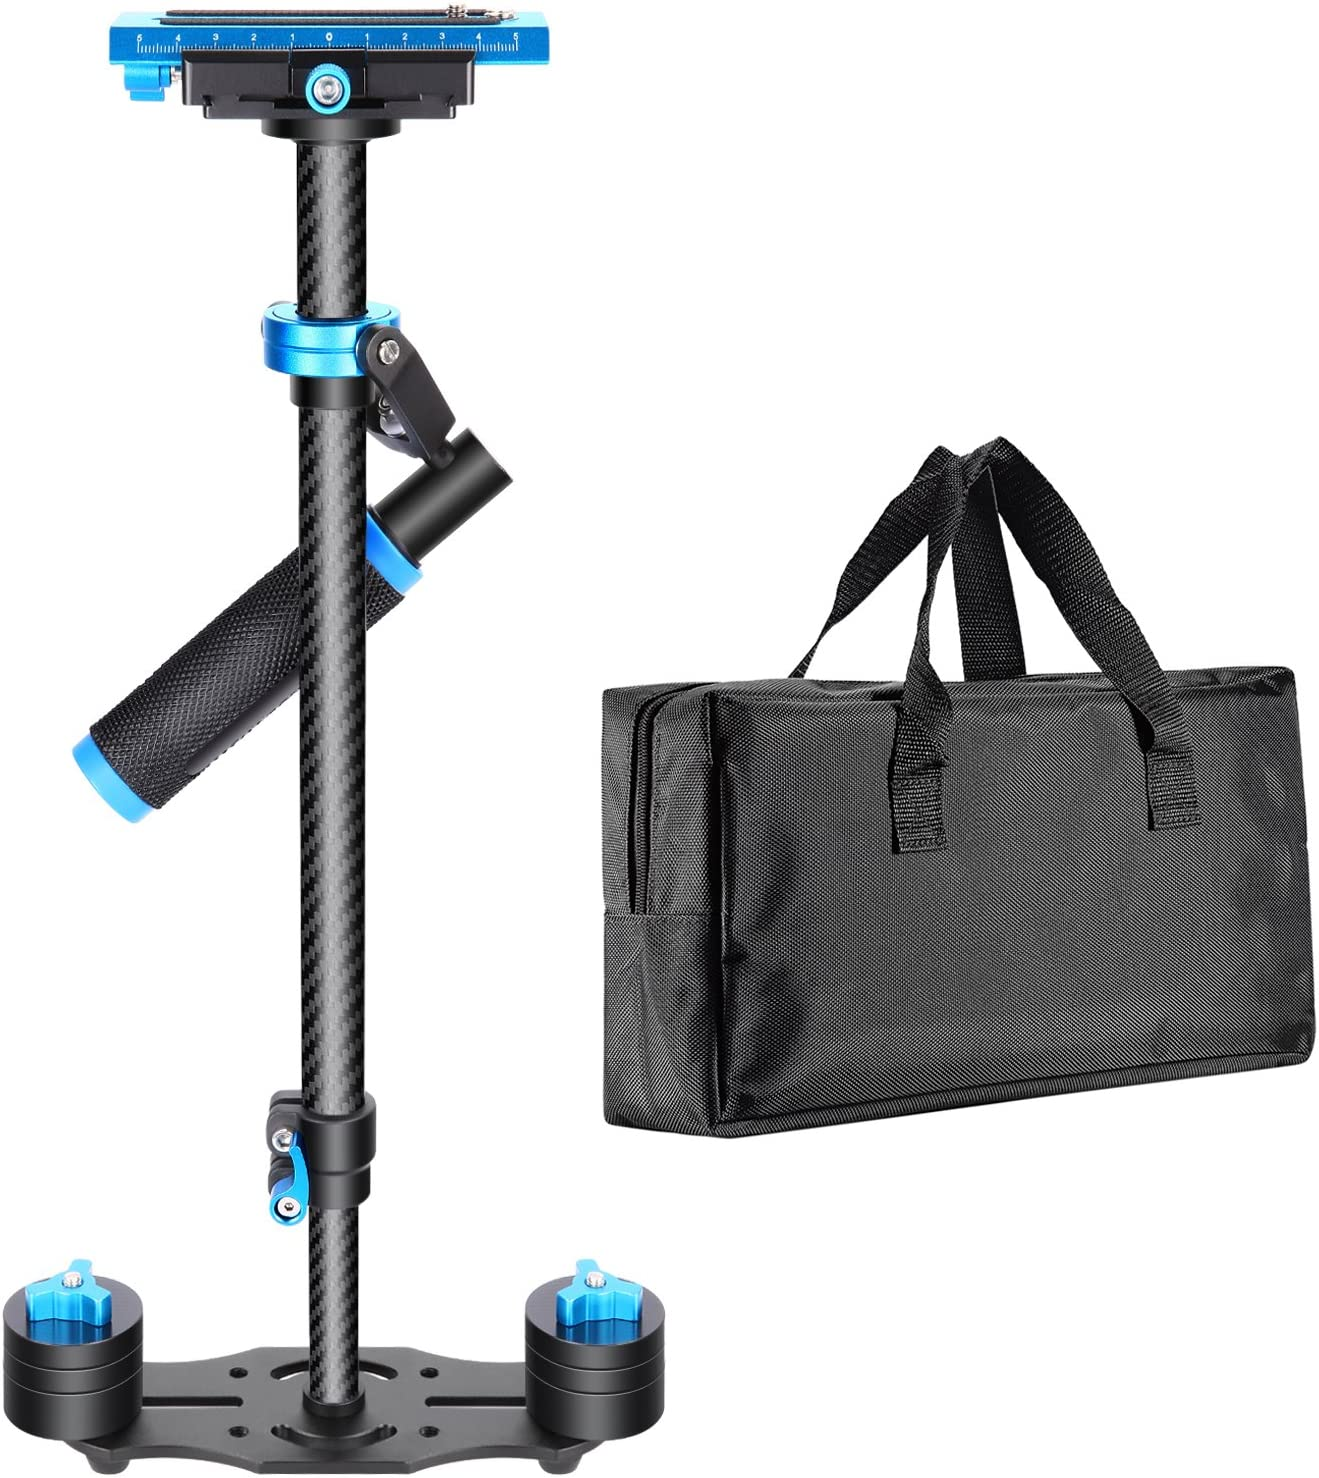 """Neewer Carbon Fiber 24""""/60cm Handheld Stabilizer with Quick Release Plate 1/4"""" and 3/8"""" Screw for DSLR and Video Cameras up to 6.6lbs/3kg"""